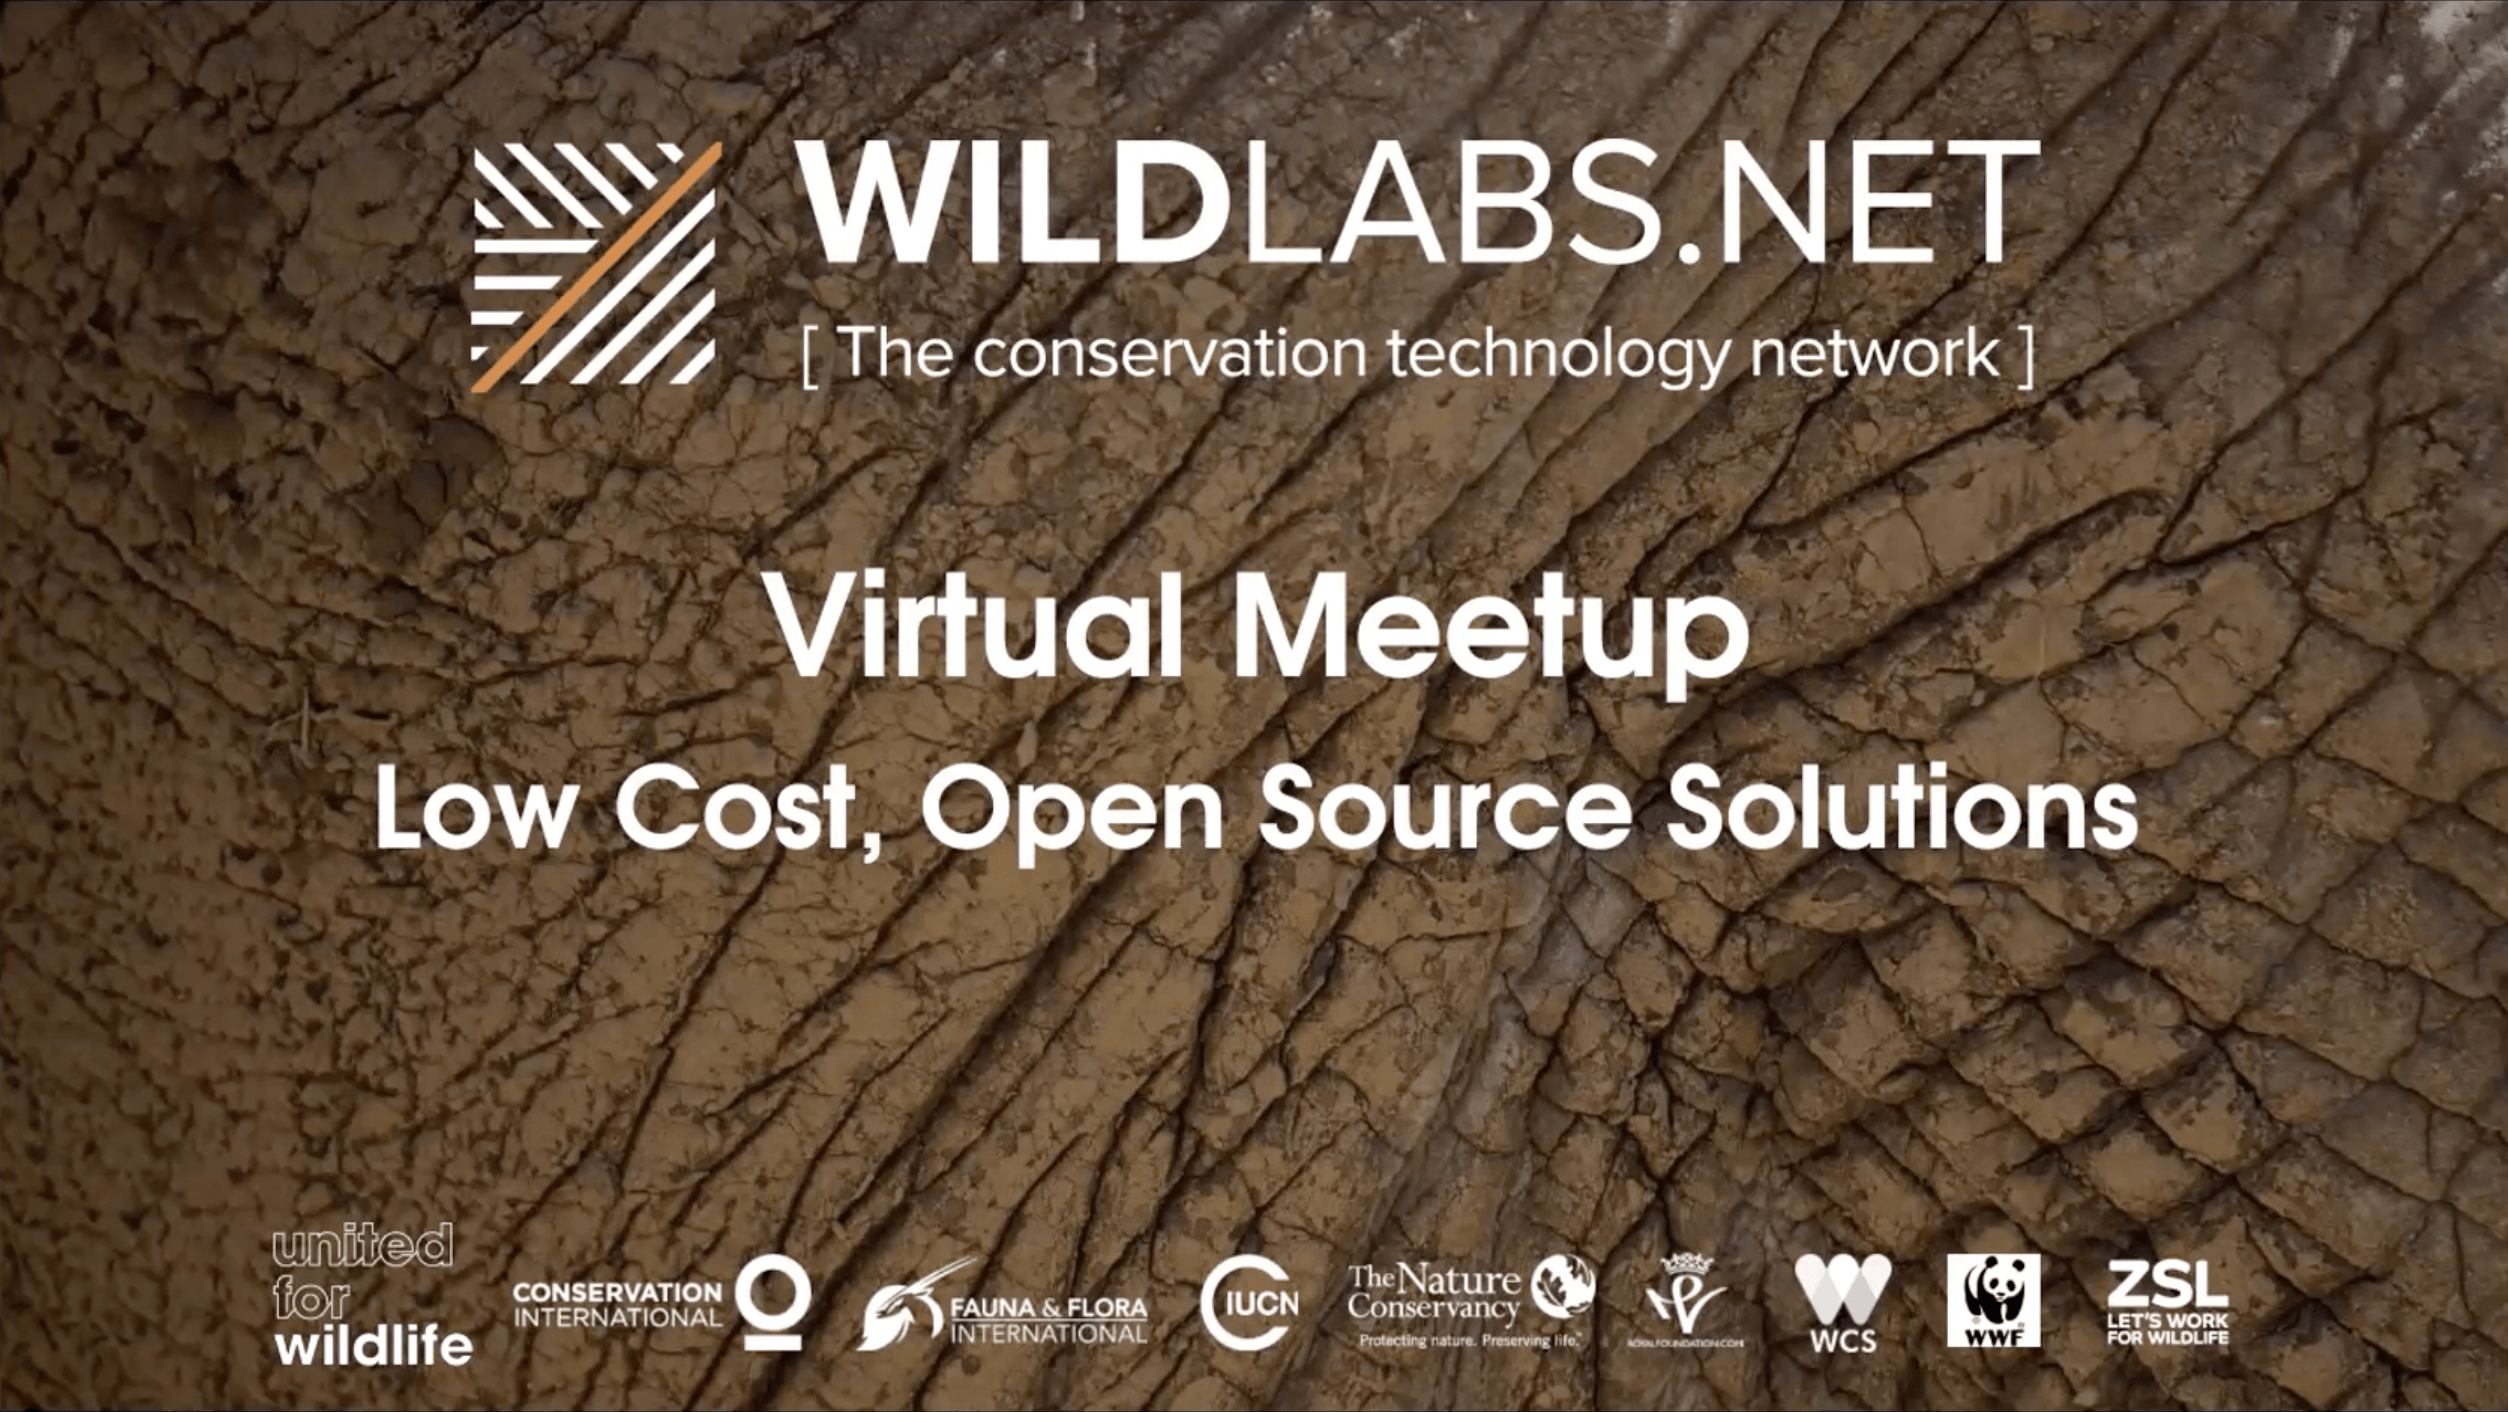 WILDLABS Virtual Meetup Link to Open Source Video Recording